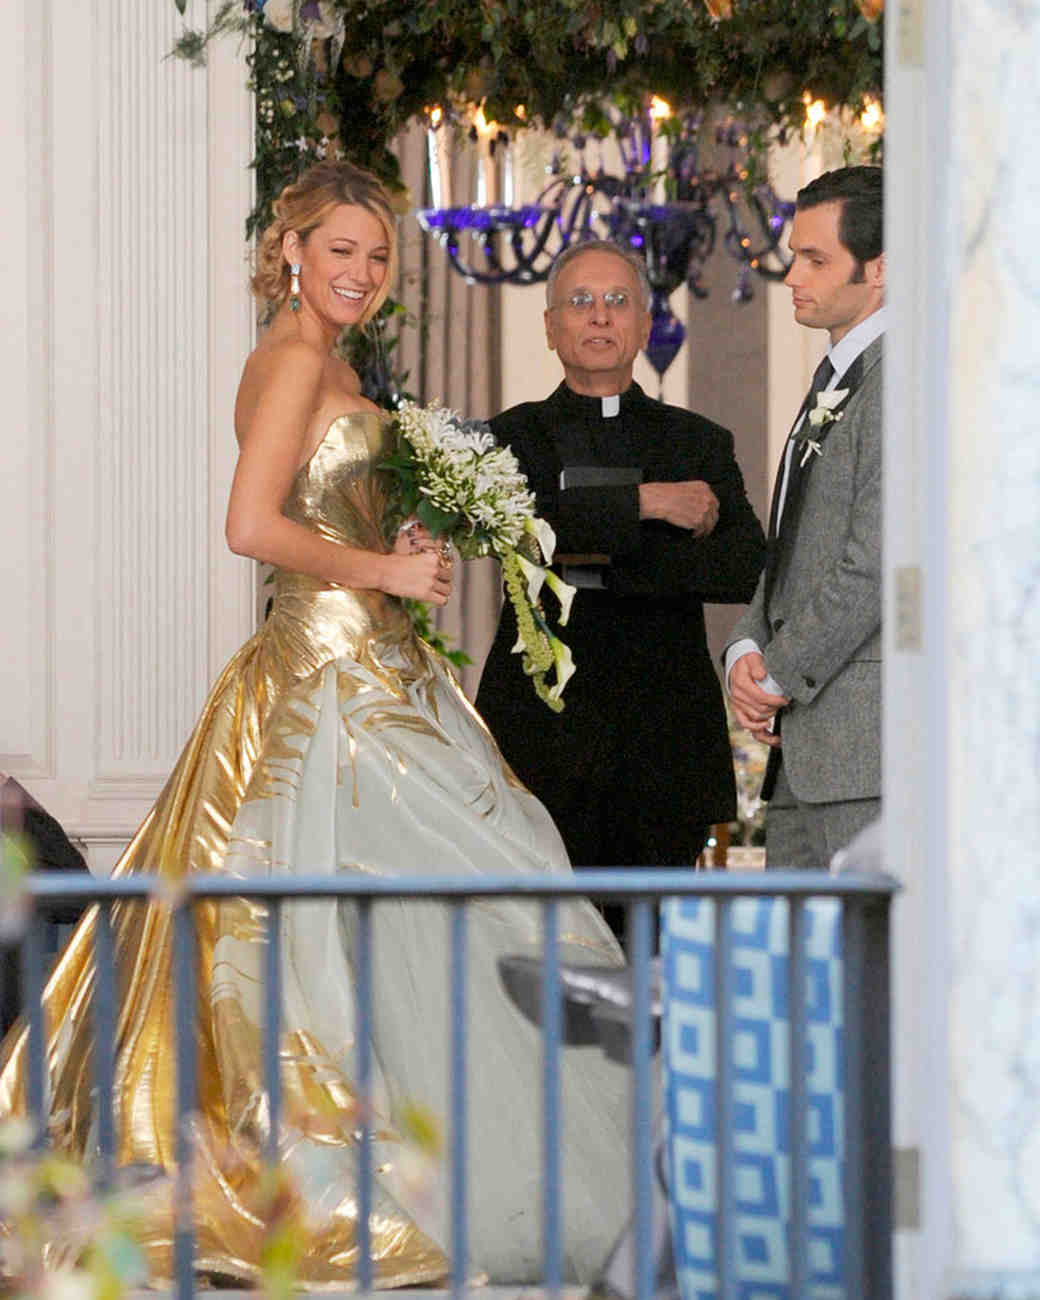 tv-wedding-dresses-serena-gossip-girl-wedding-1115.jpg